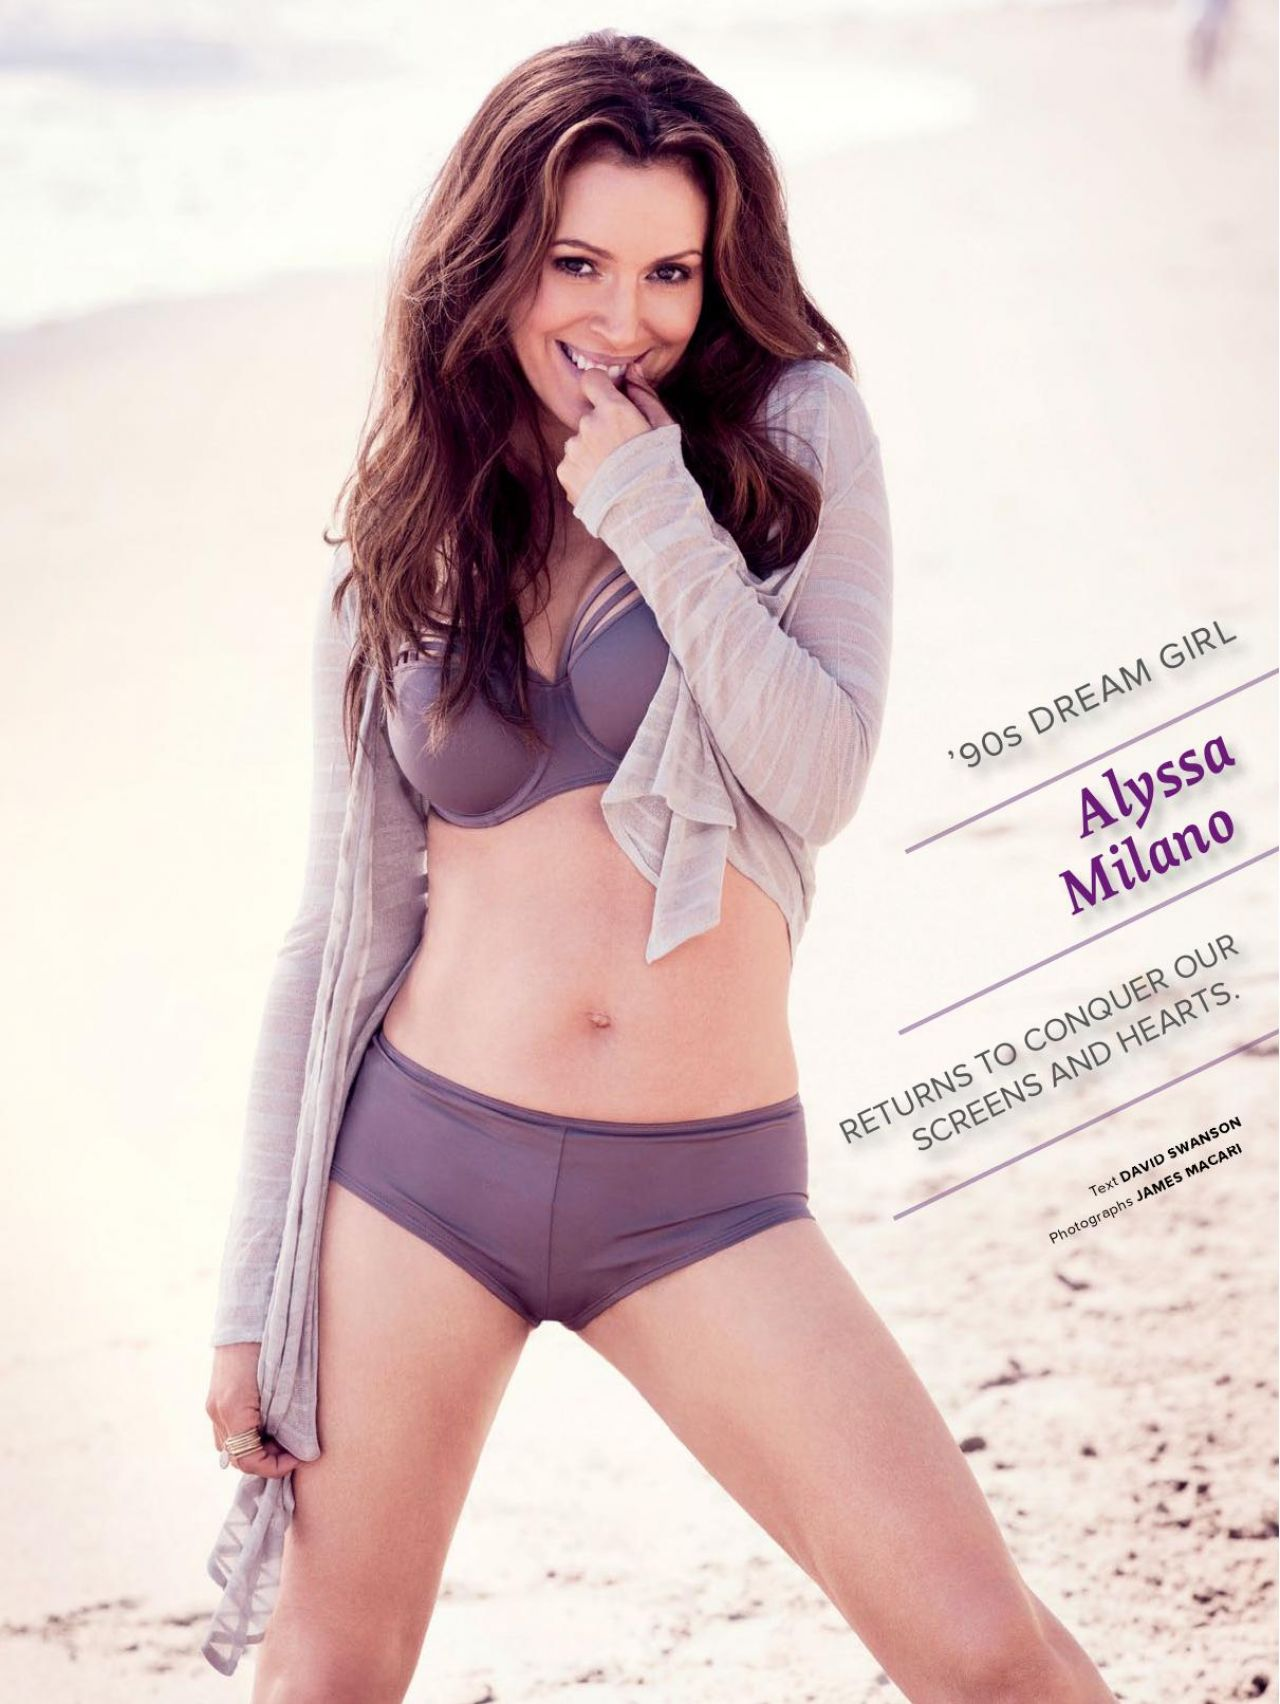 Alyssa Milano - MAXIM Magazine (India) - November 2013 Issue